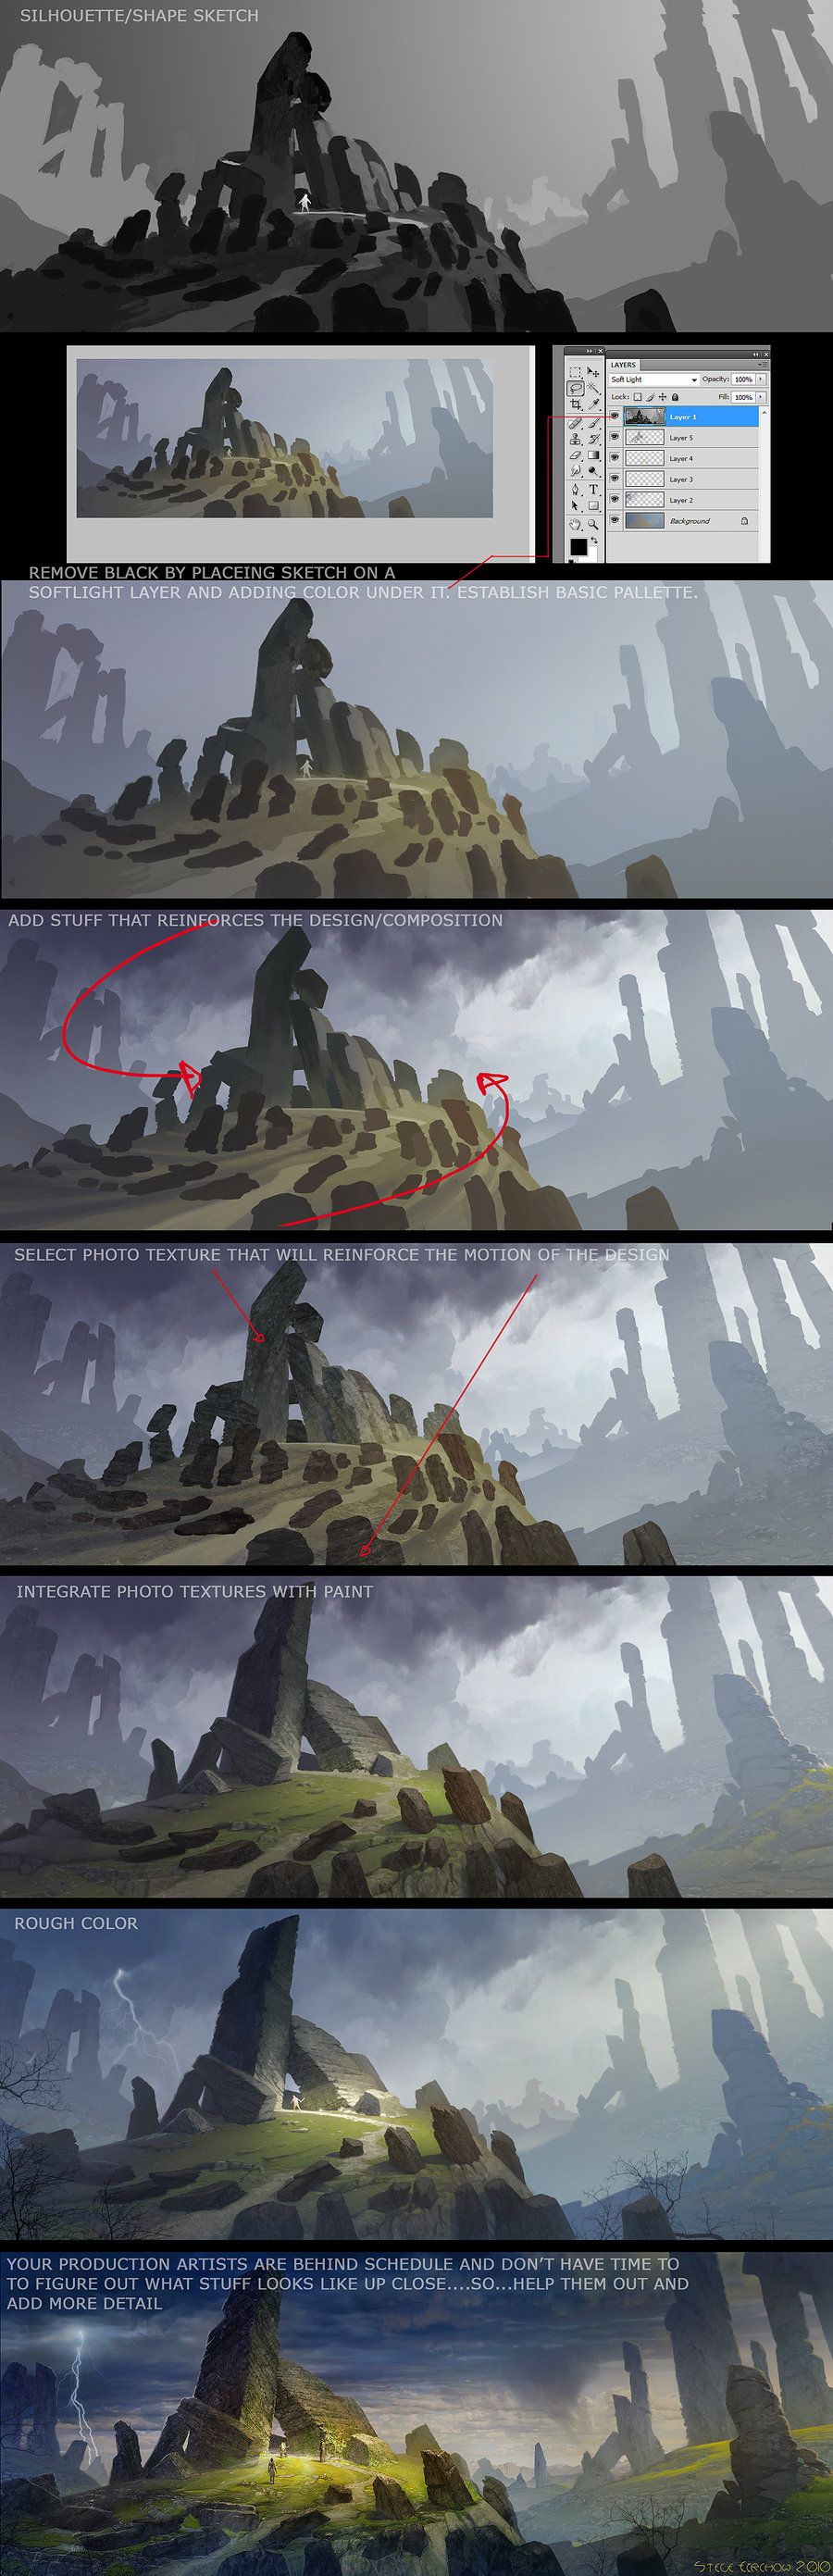 How to color your art in photoshop - Concept Art Tutorial For Photoshop I Especially Like The Step On Getting Rid Of Grayscale